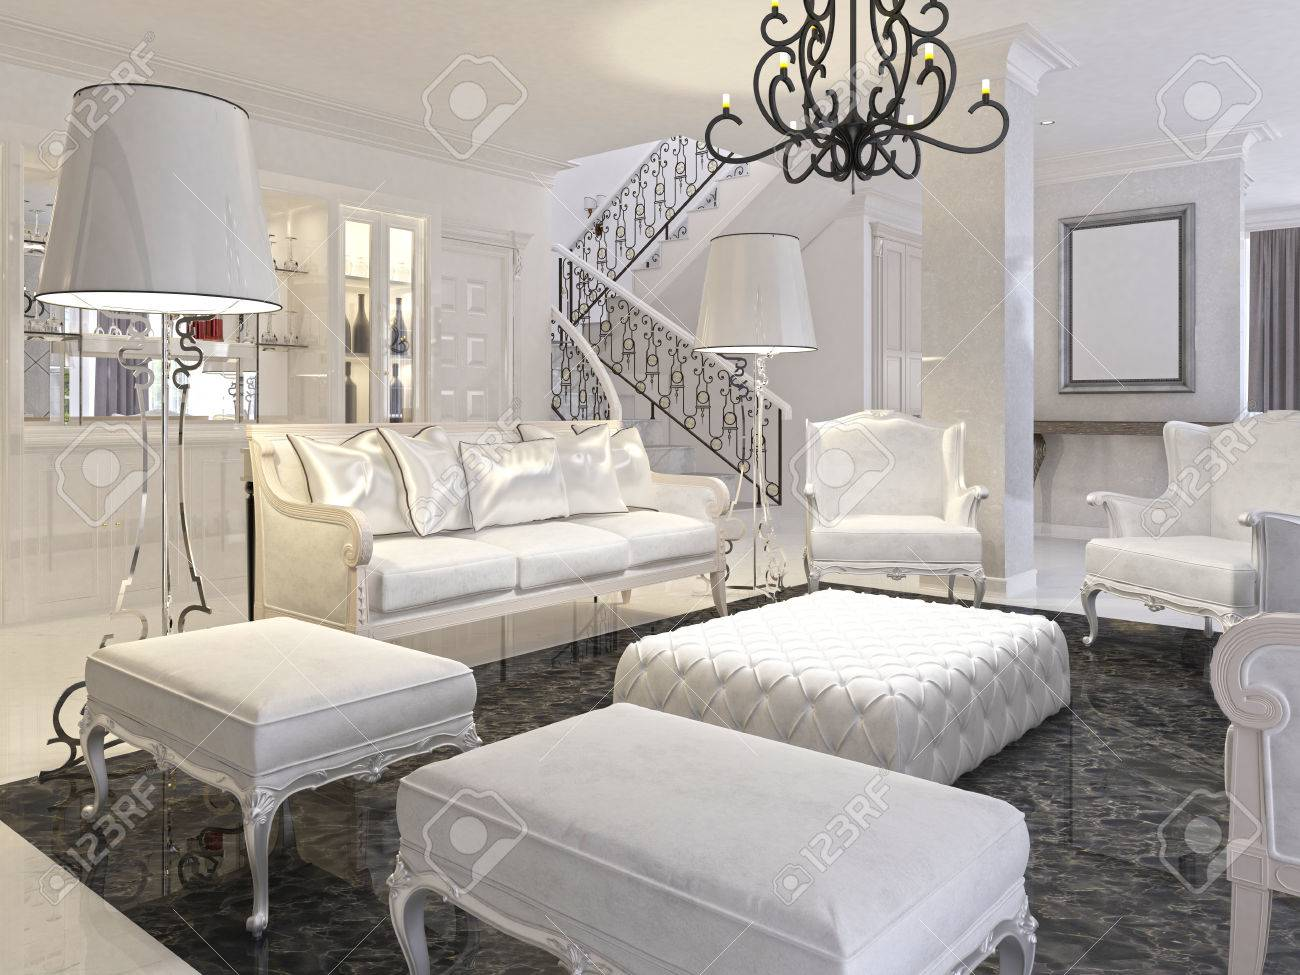 Luxury White Living Room With White Furniture And Black Marble